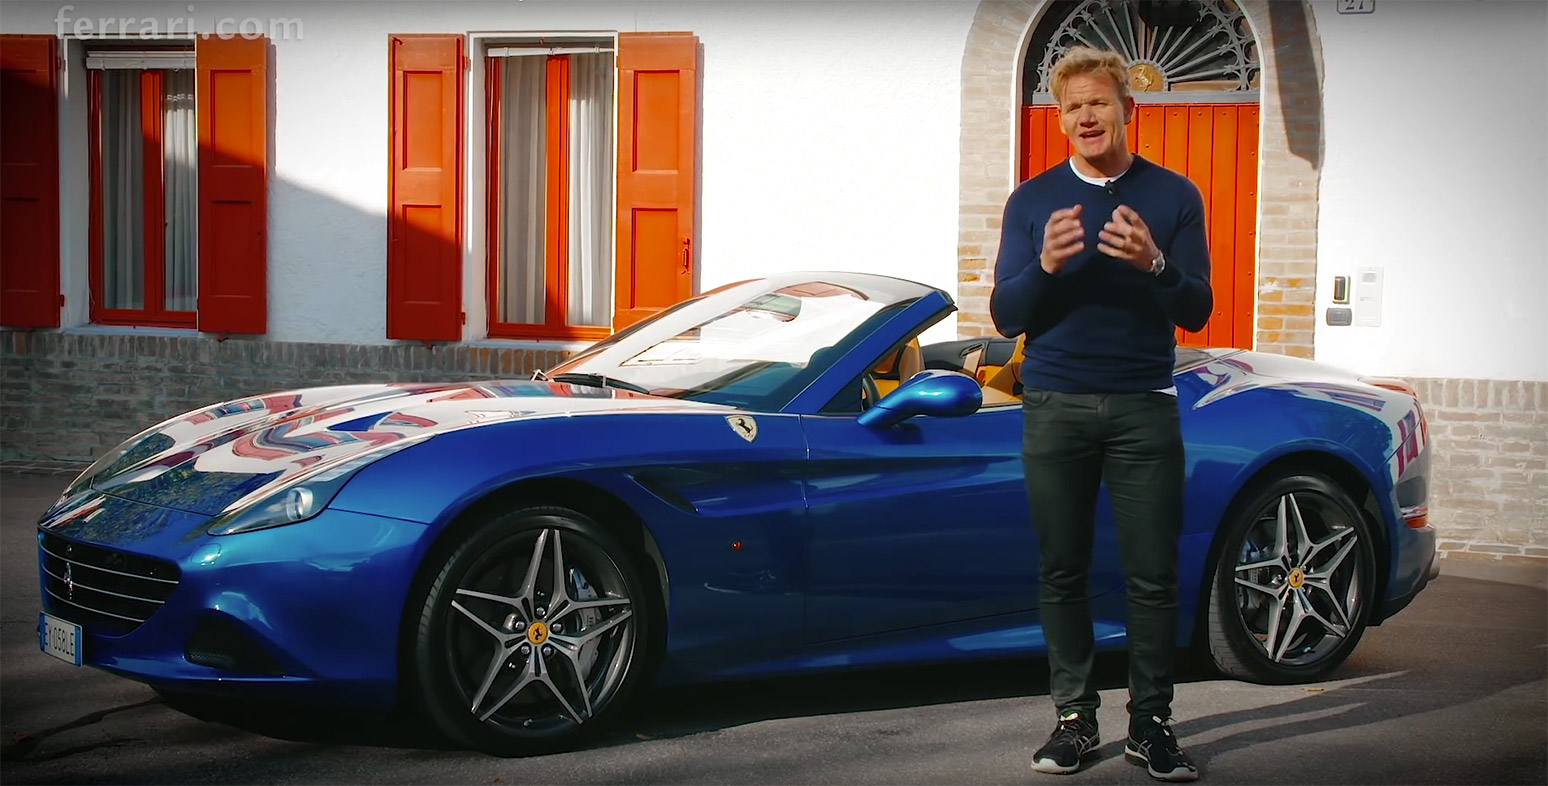 Gordon Ramsay Ferrari California T